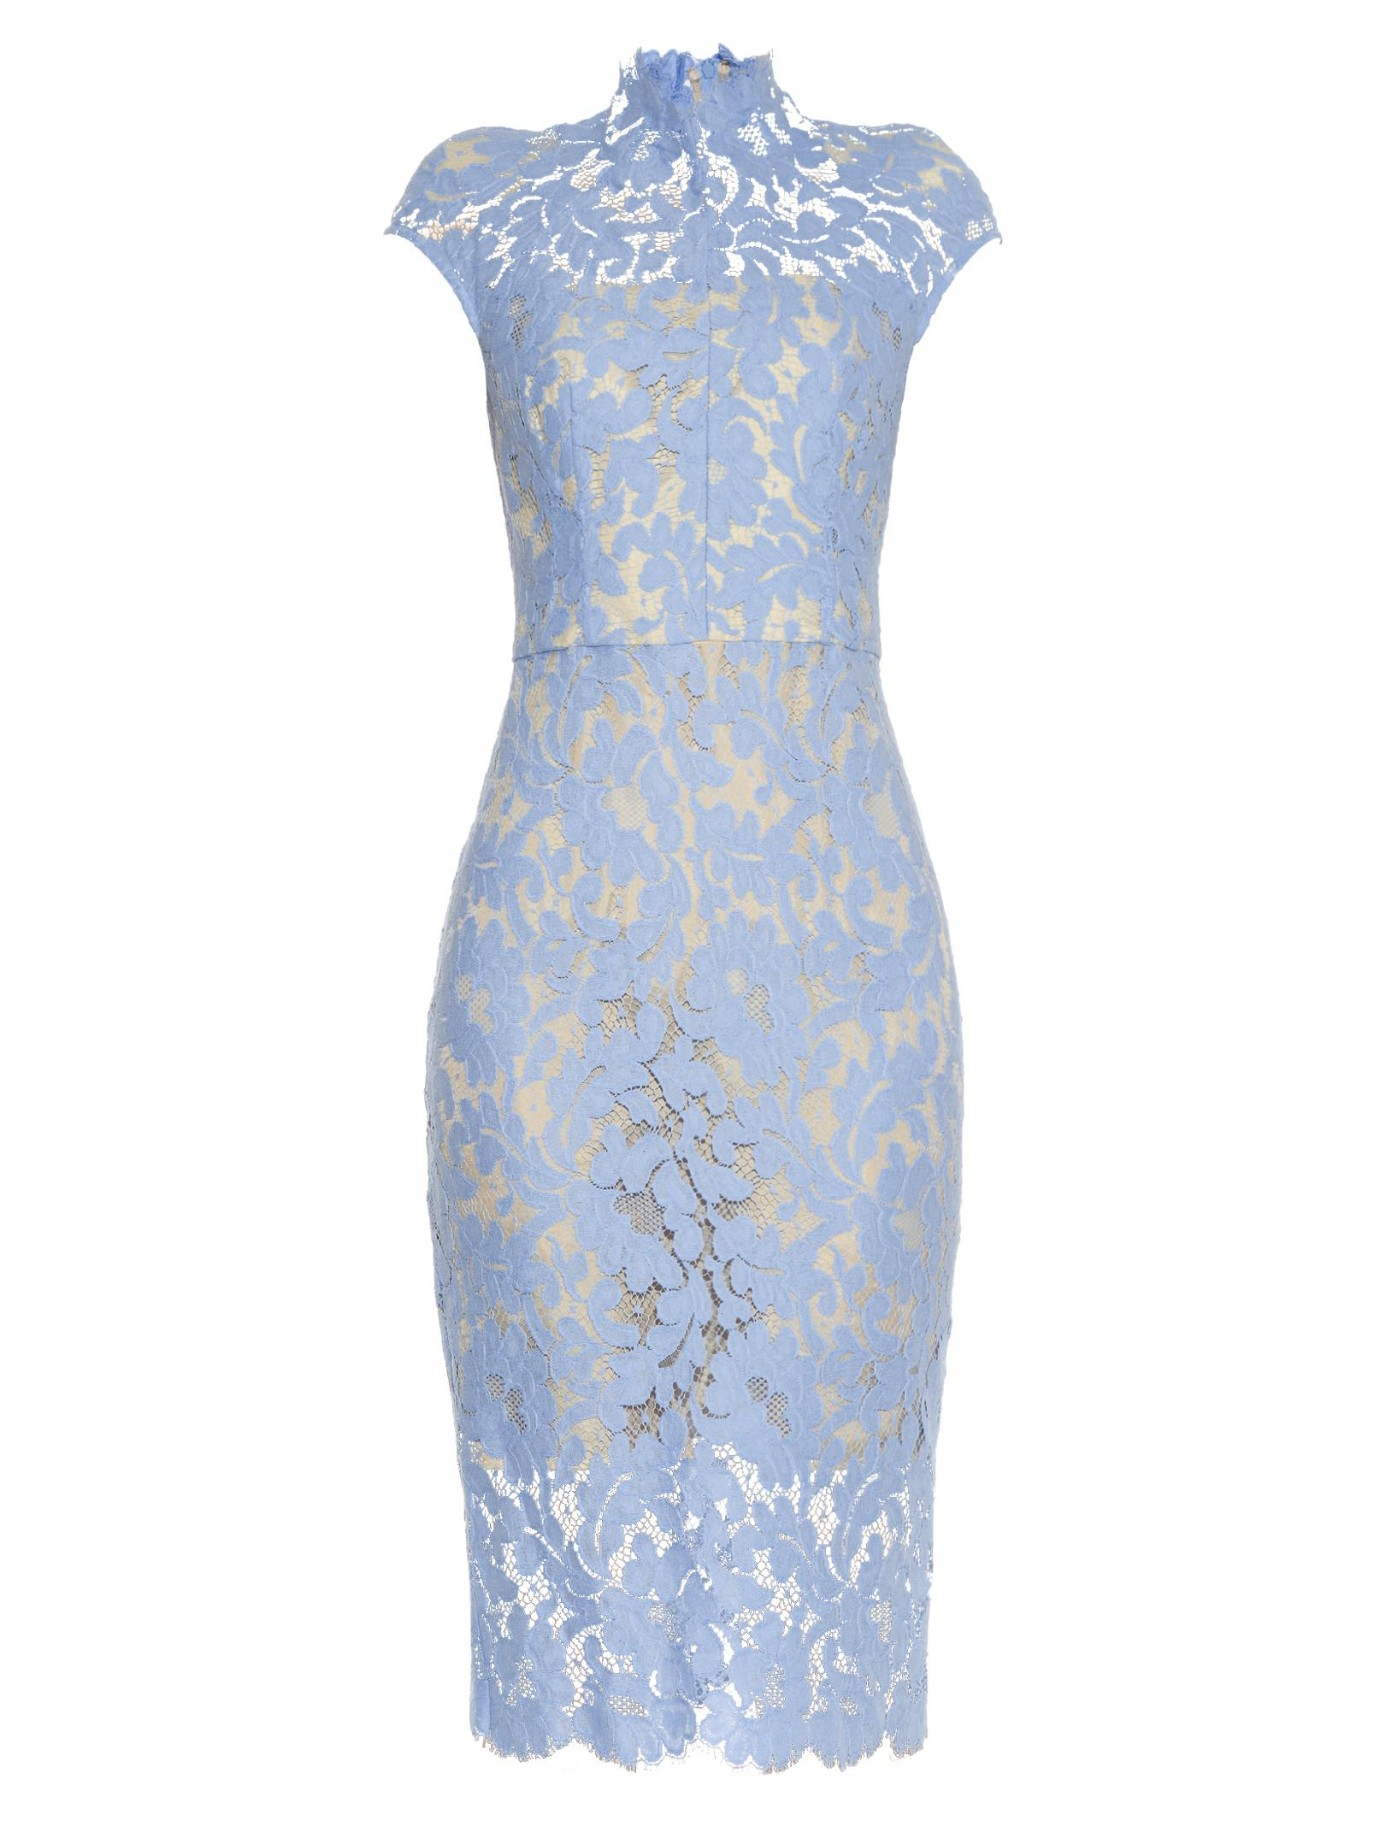 Lyst lover warrior french lace midi dress in blue for Light blue lace wedding dress